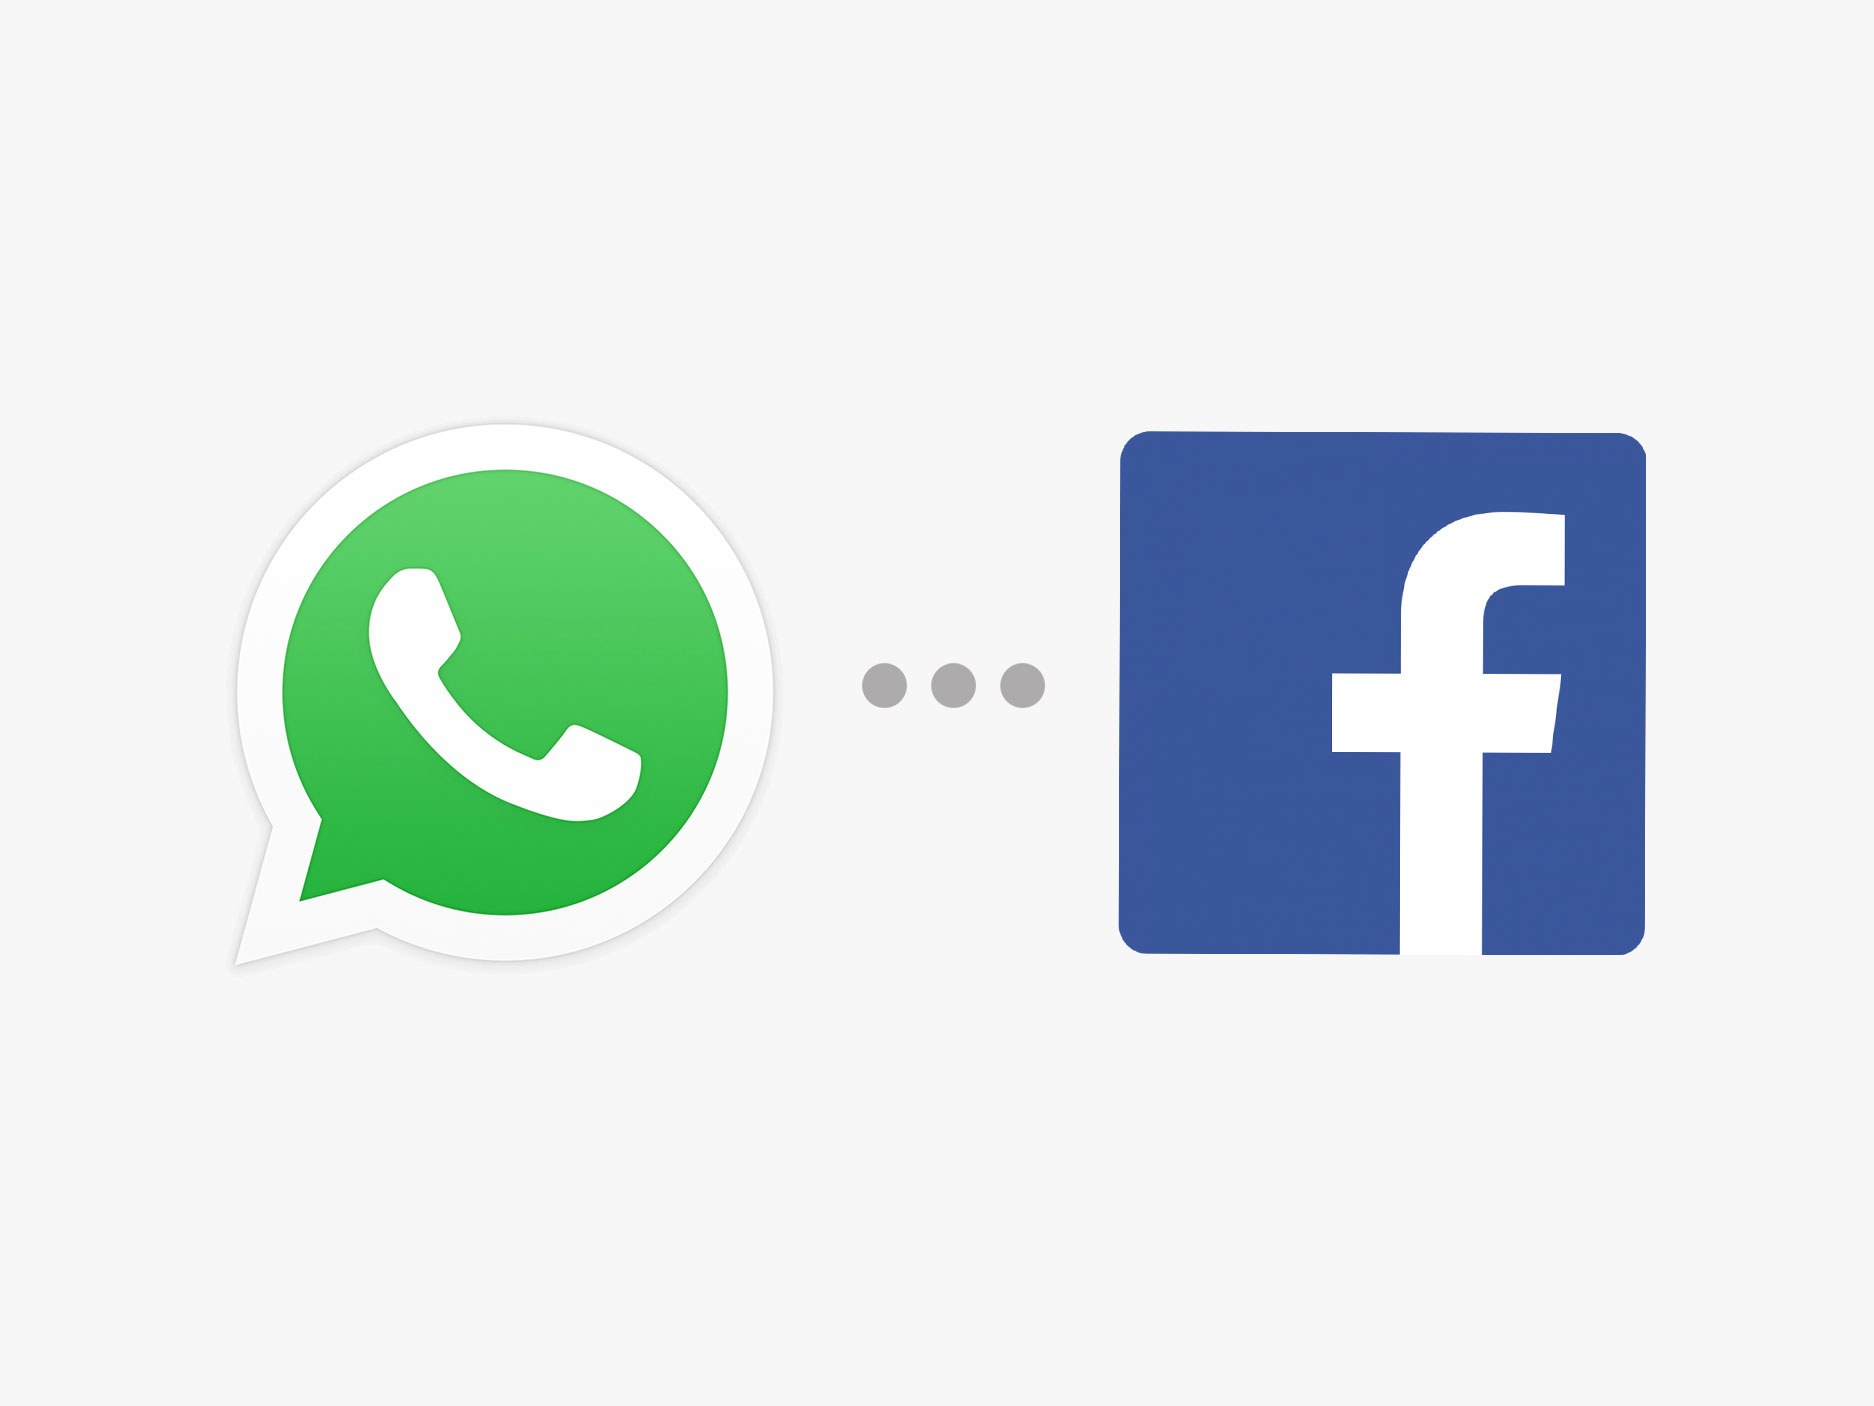 WhatsApp overtakes Facebook as the world's most popular social